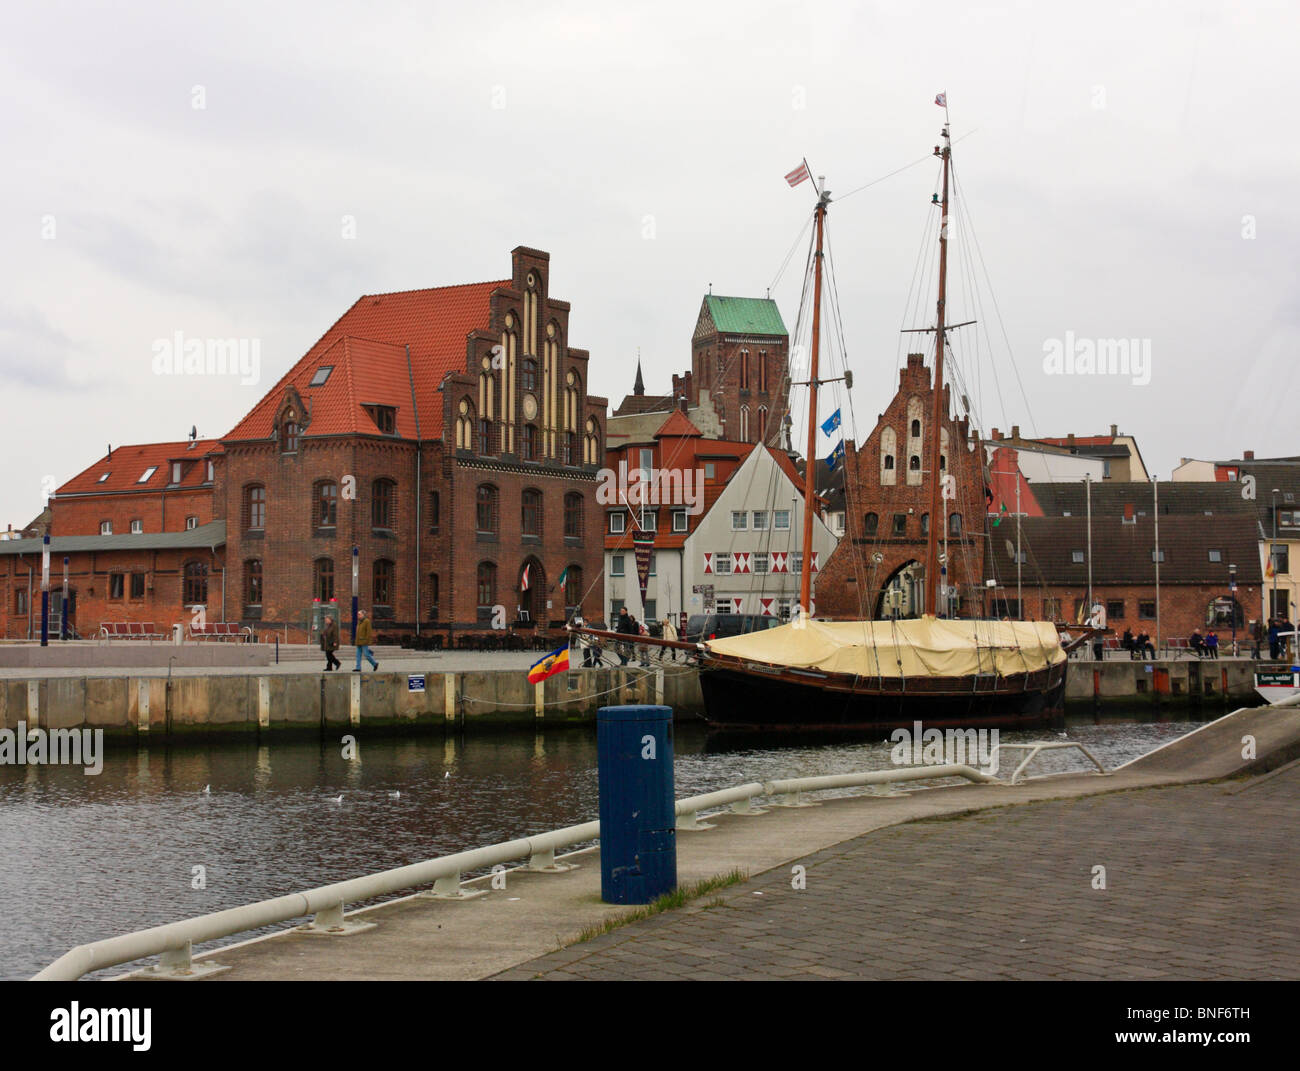 Old Harbour with historical warehouses in Wismar, Germany - Stock Image